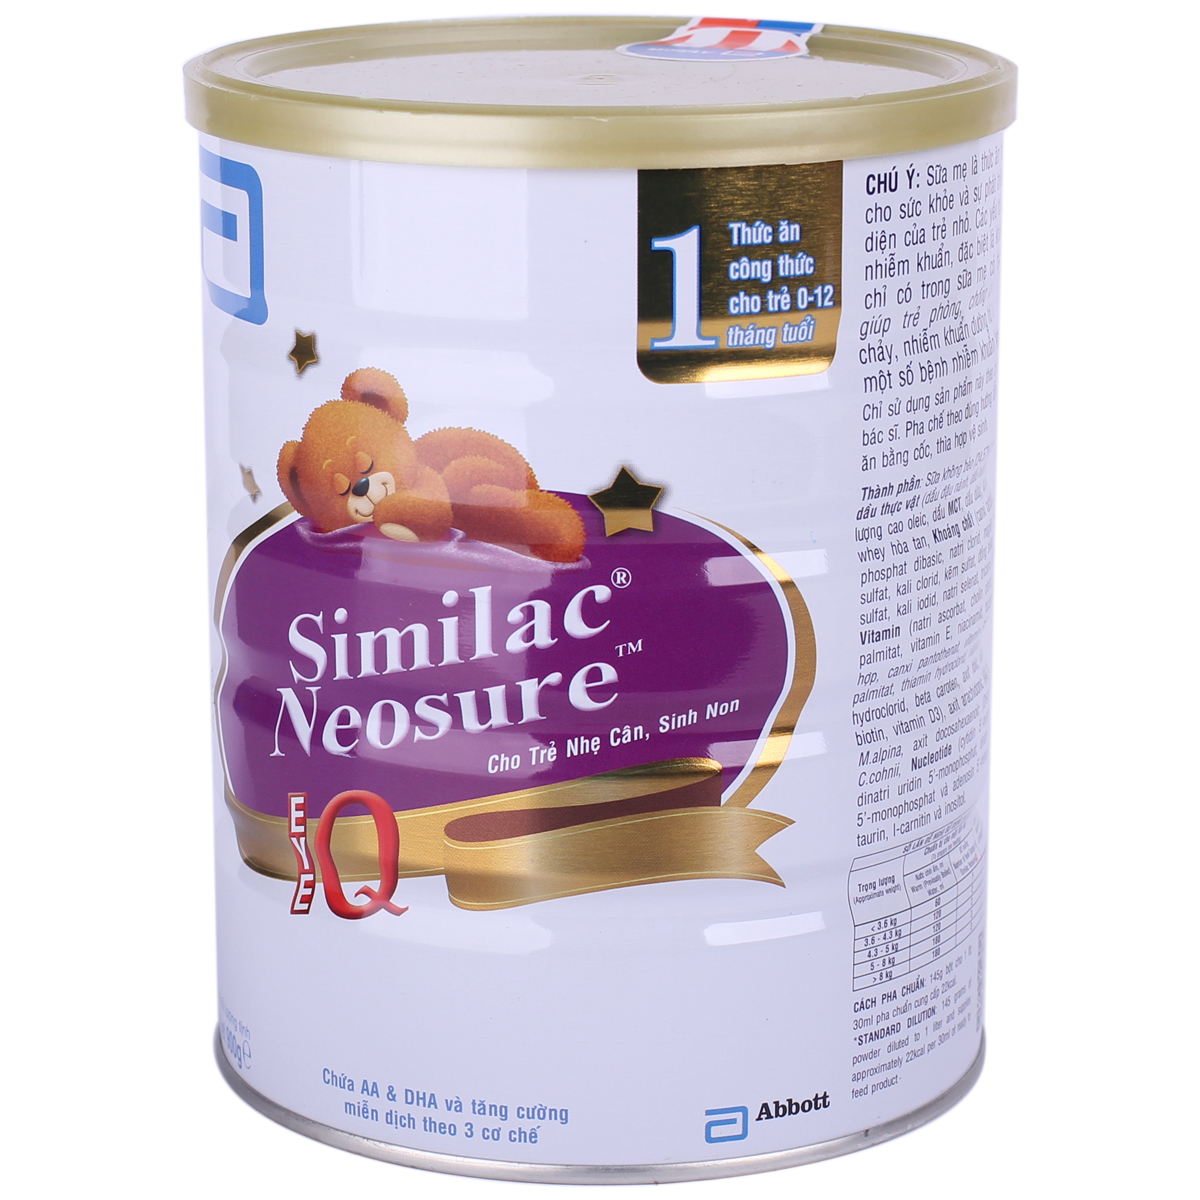 Sua Similac Neosure so 1 - 900g